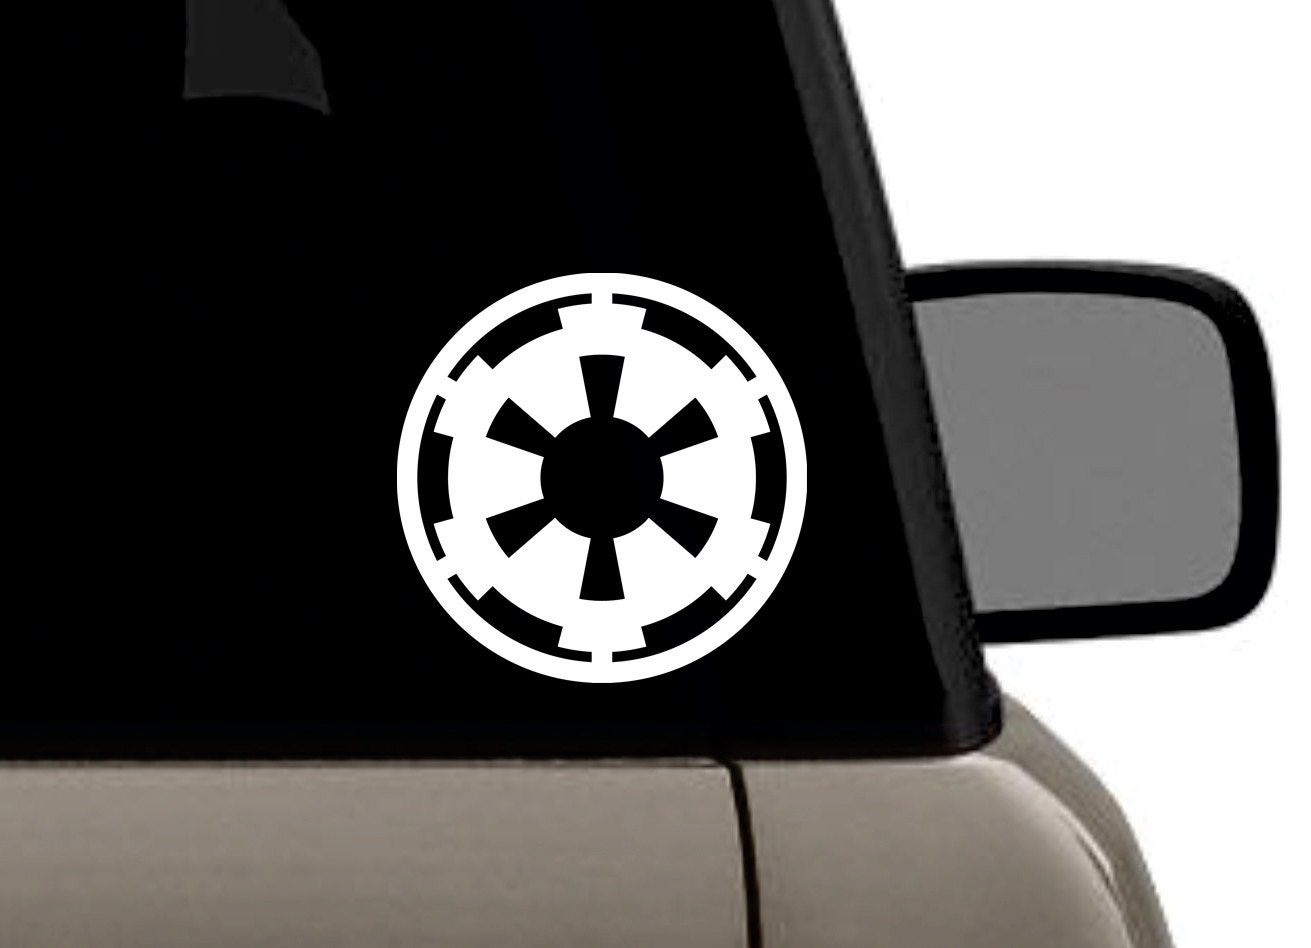 star wars imperial galactic empire logo vinyl decal bumper. Black Bedroom Furniture Sets. Home Design Ideas